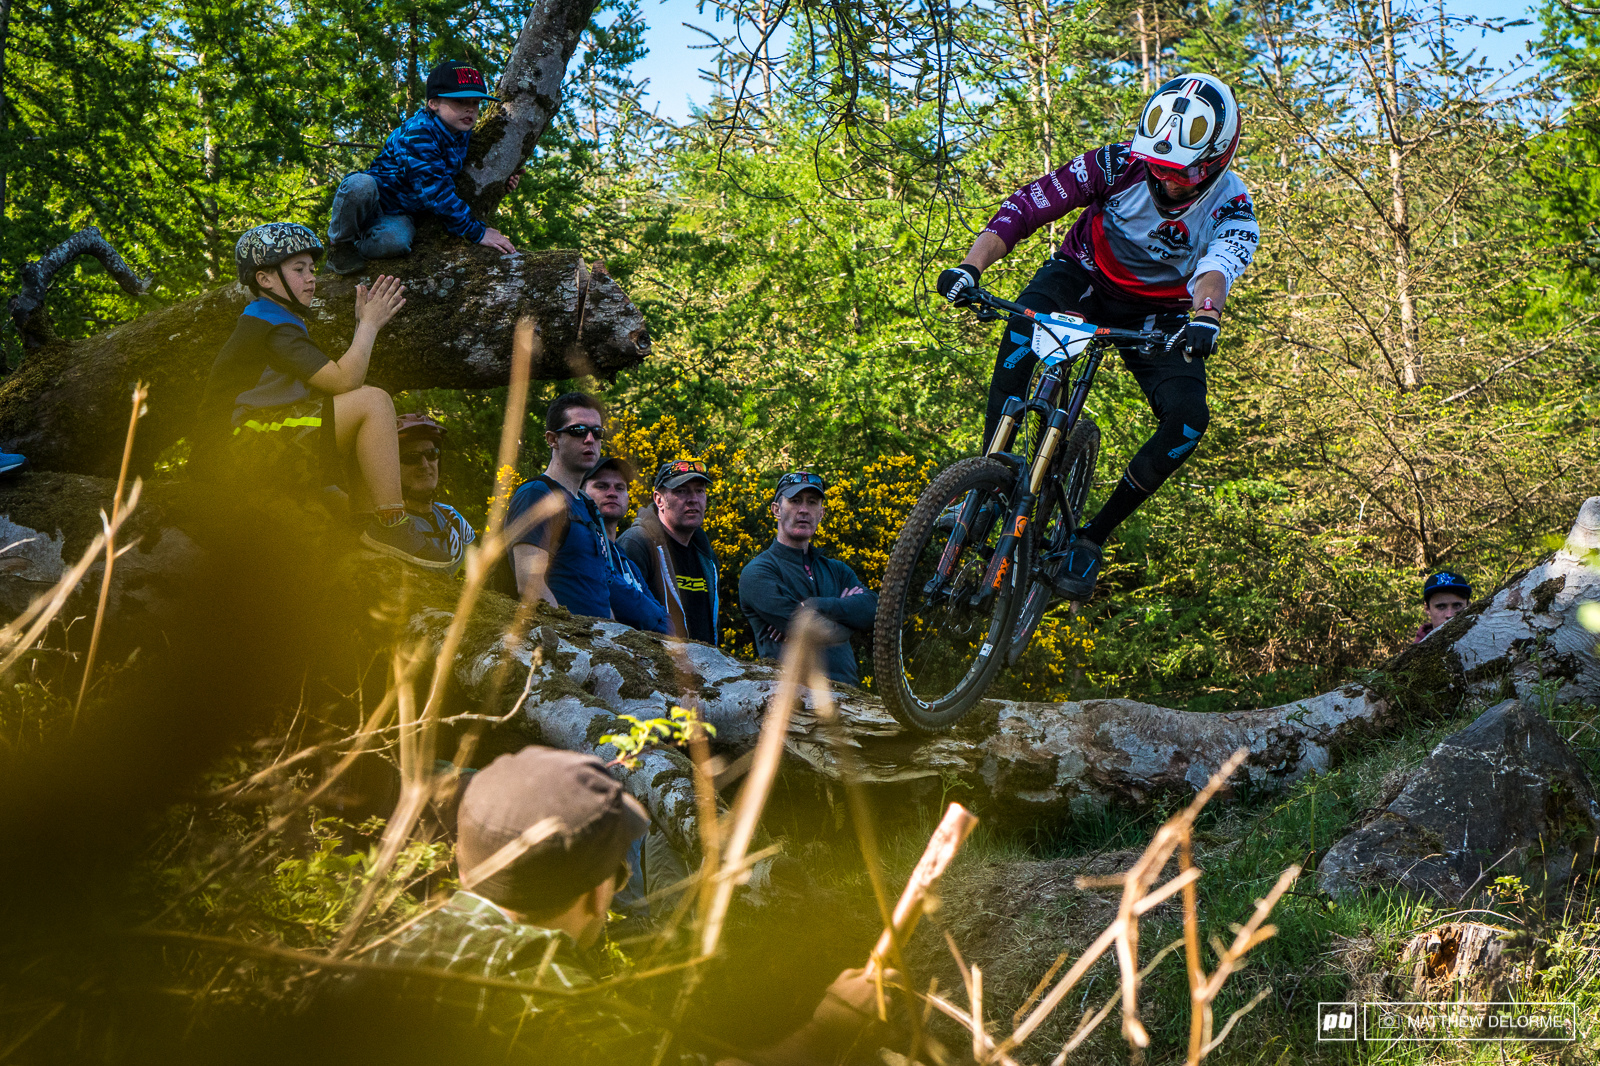 Florian Nicolai took fifth place in the over all today.